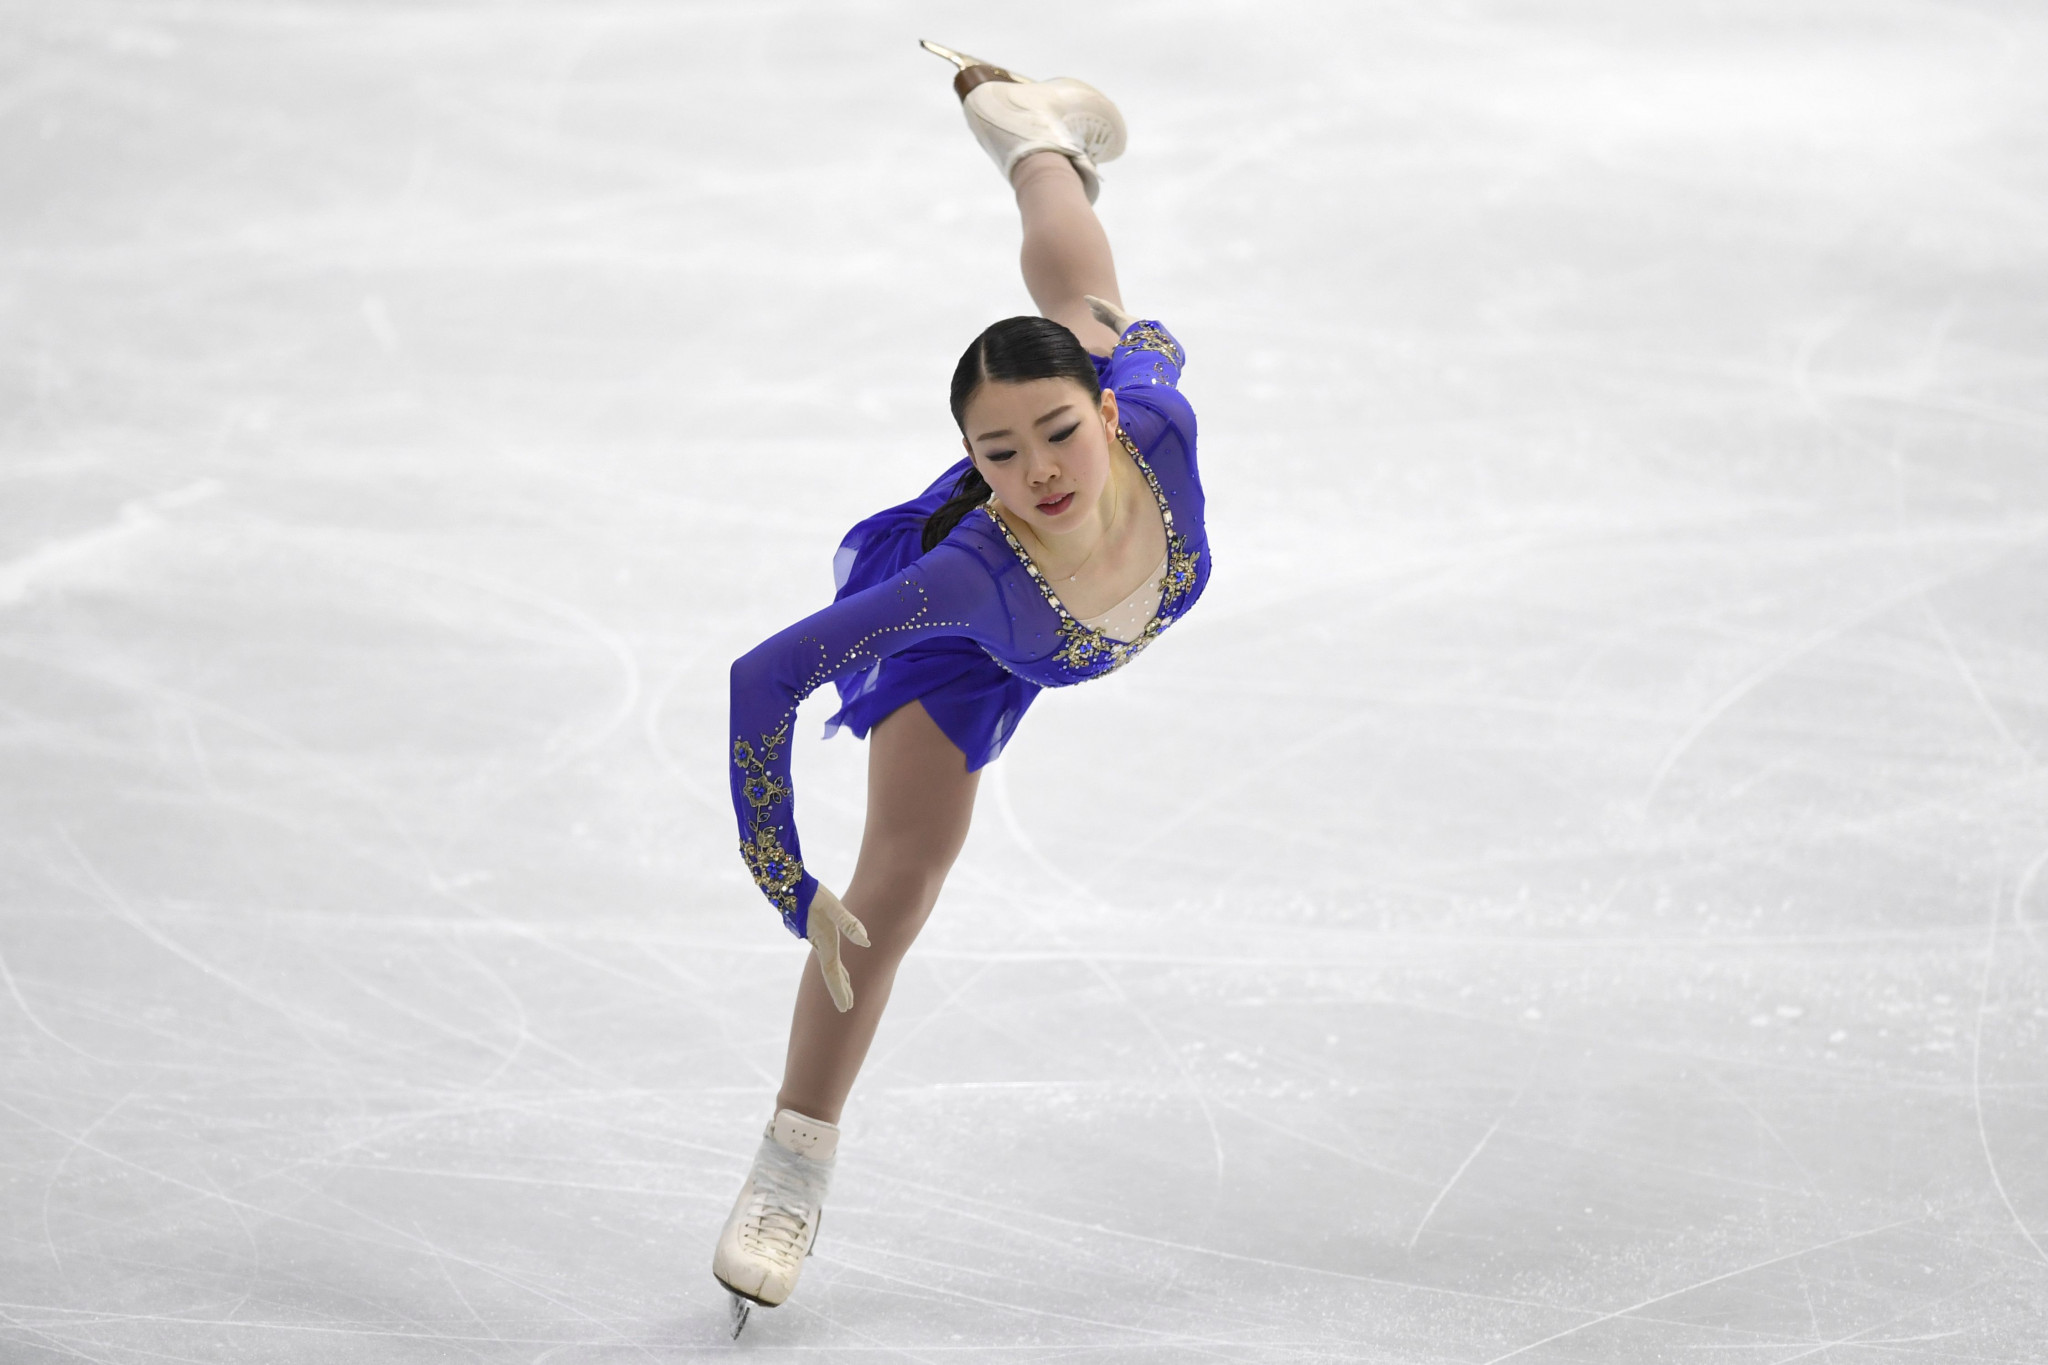 Defending champion Kihira claims lead in women's event at ISU Four Continents Figure Skating Championships